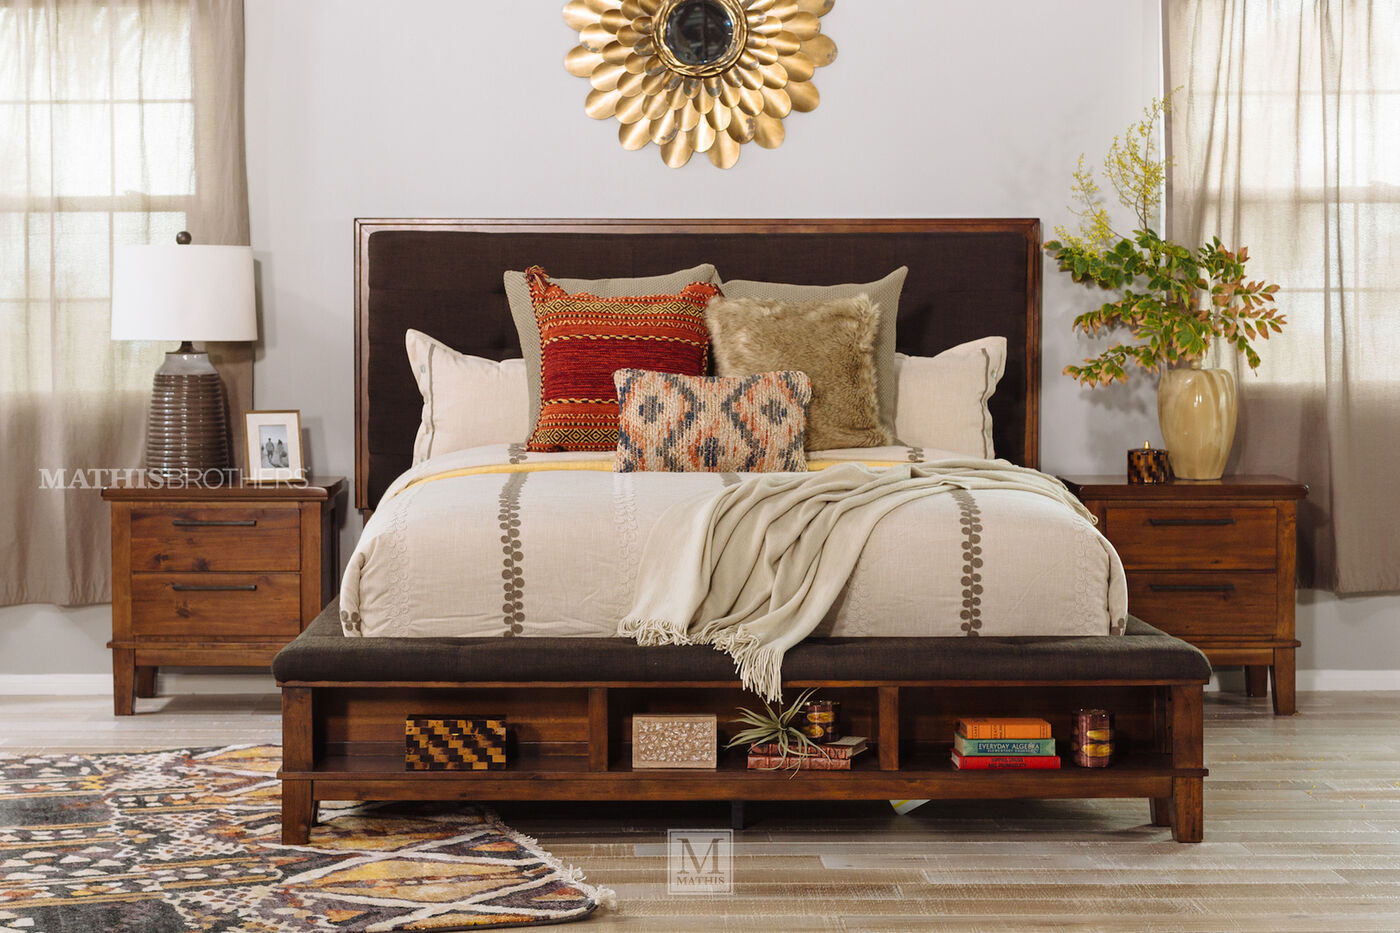 Four Piece Contemporary Storage Bedroom Set In Brown Mathis Brothers Furniture